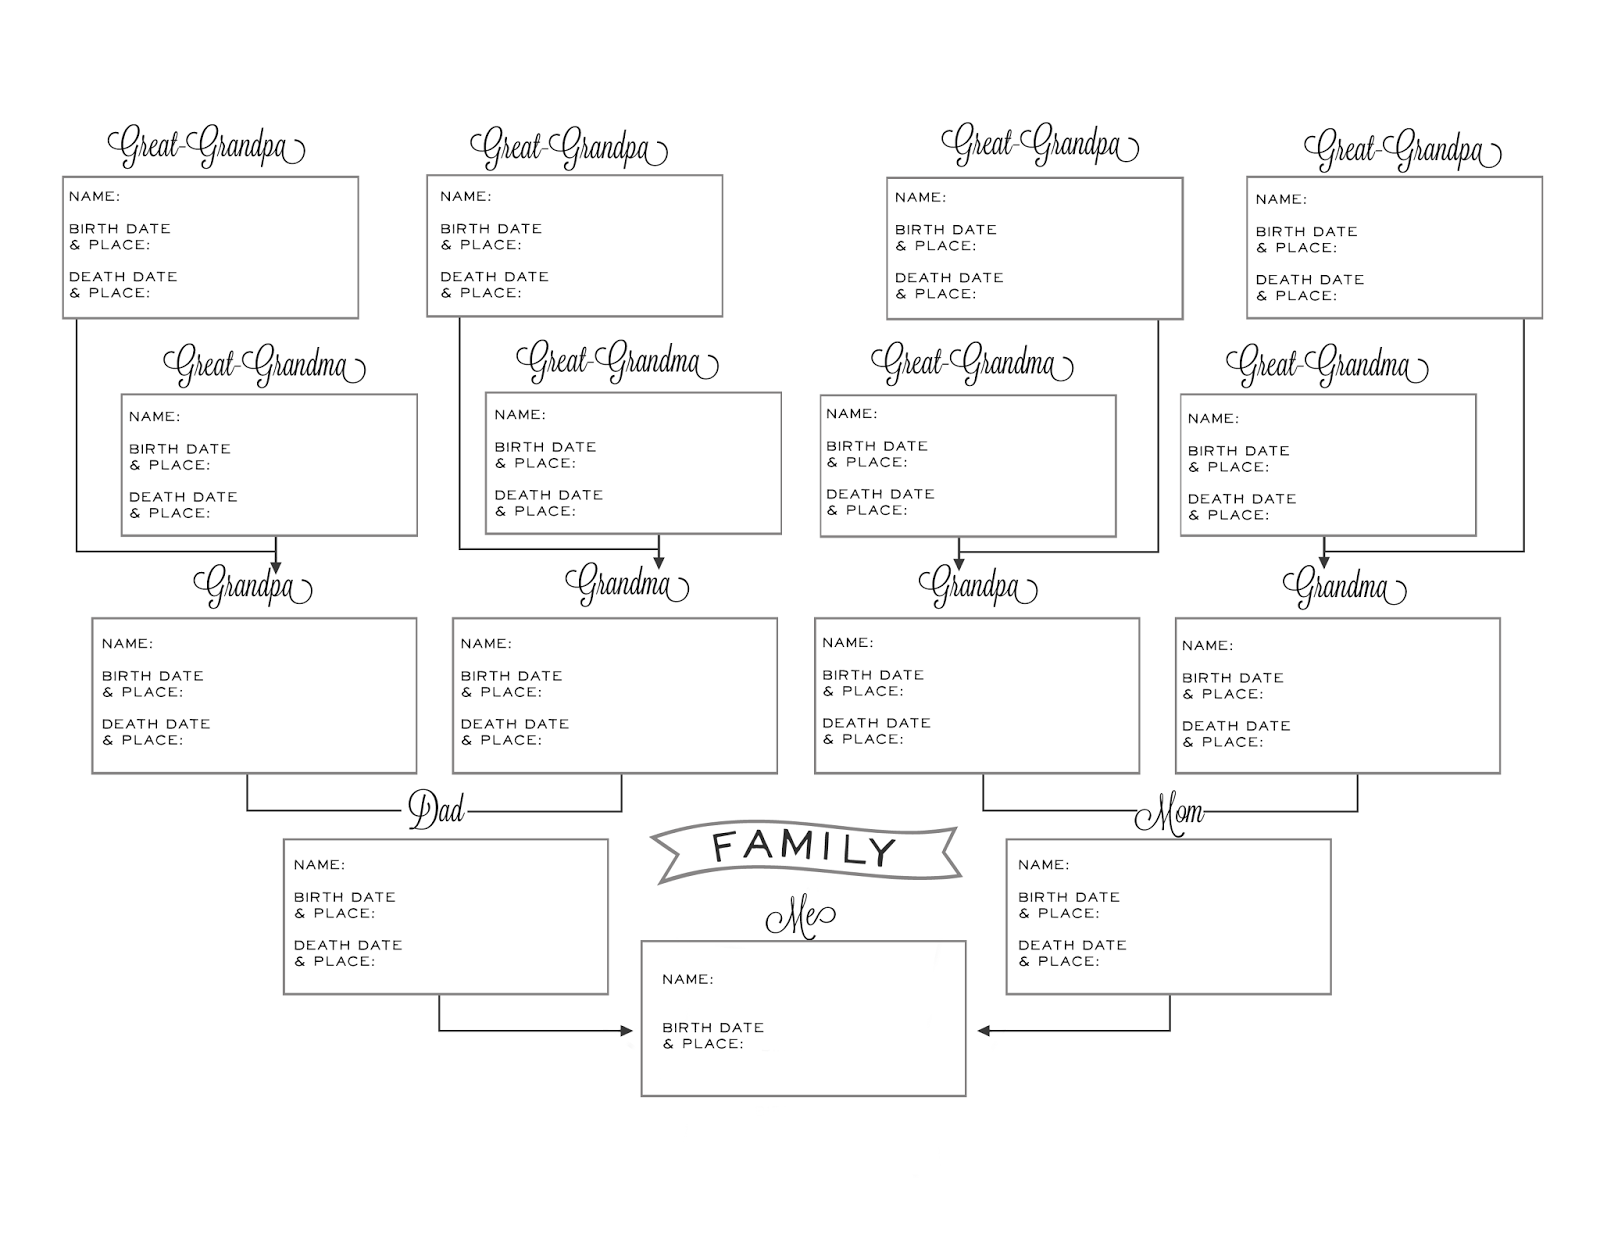 Gratifying image with regard to printable pedigree chart